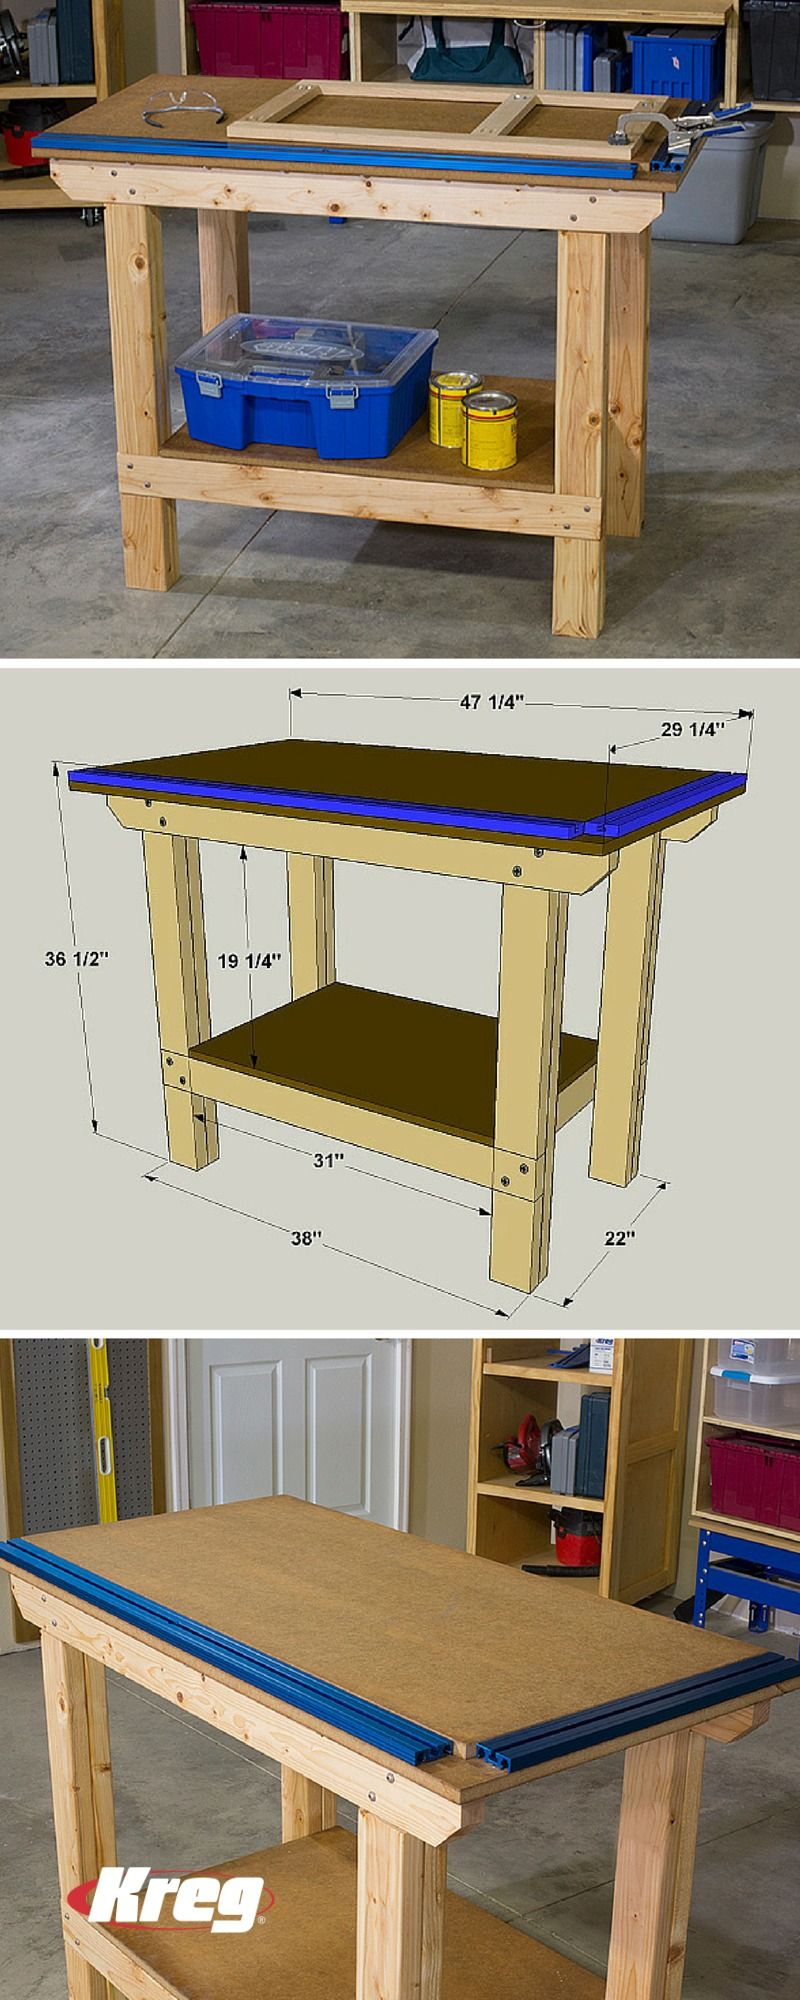 Photo of FREE PROJECT PLAN: How to Build a DIY Workbench